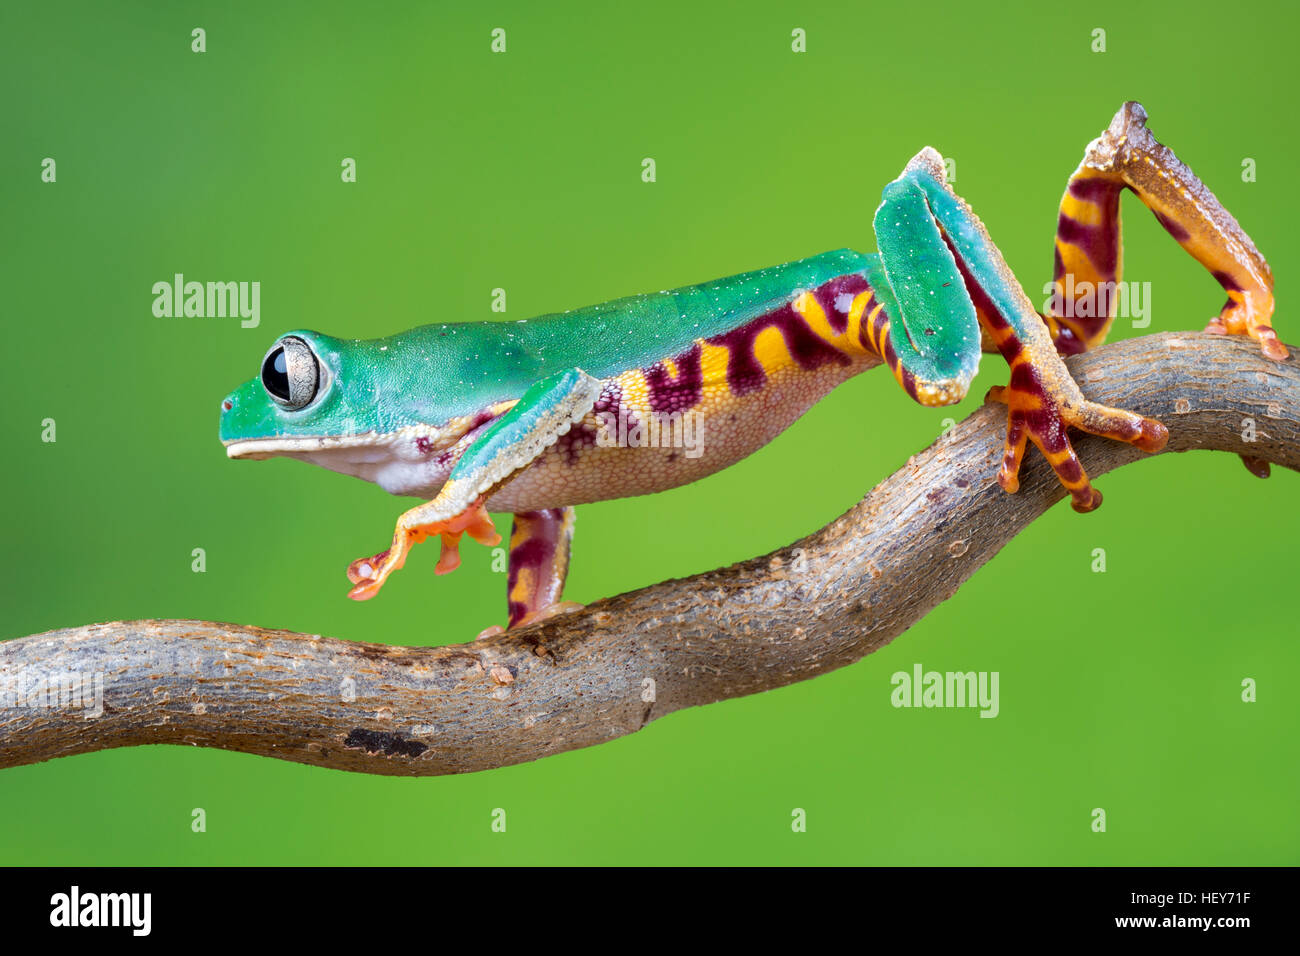 Super tiger legged waxy monkey frog - Stock Image